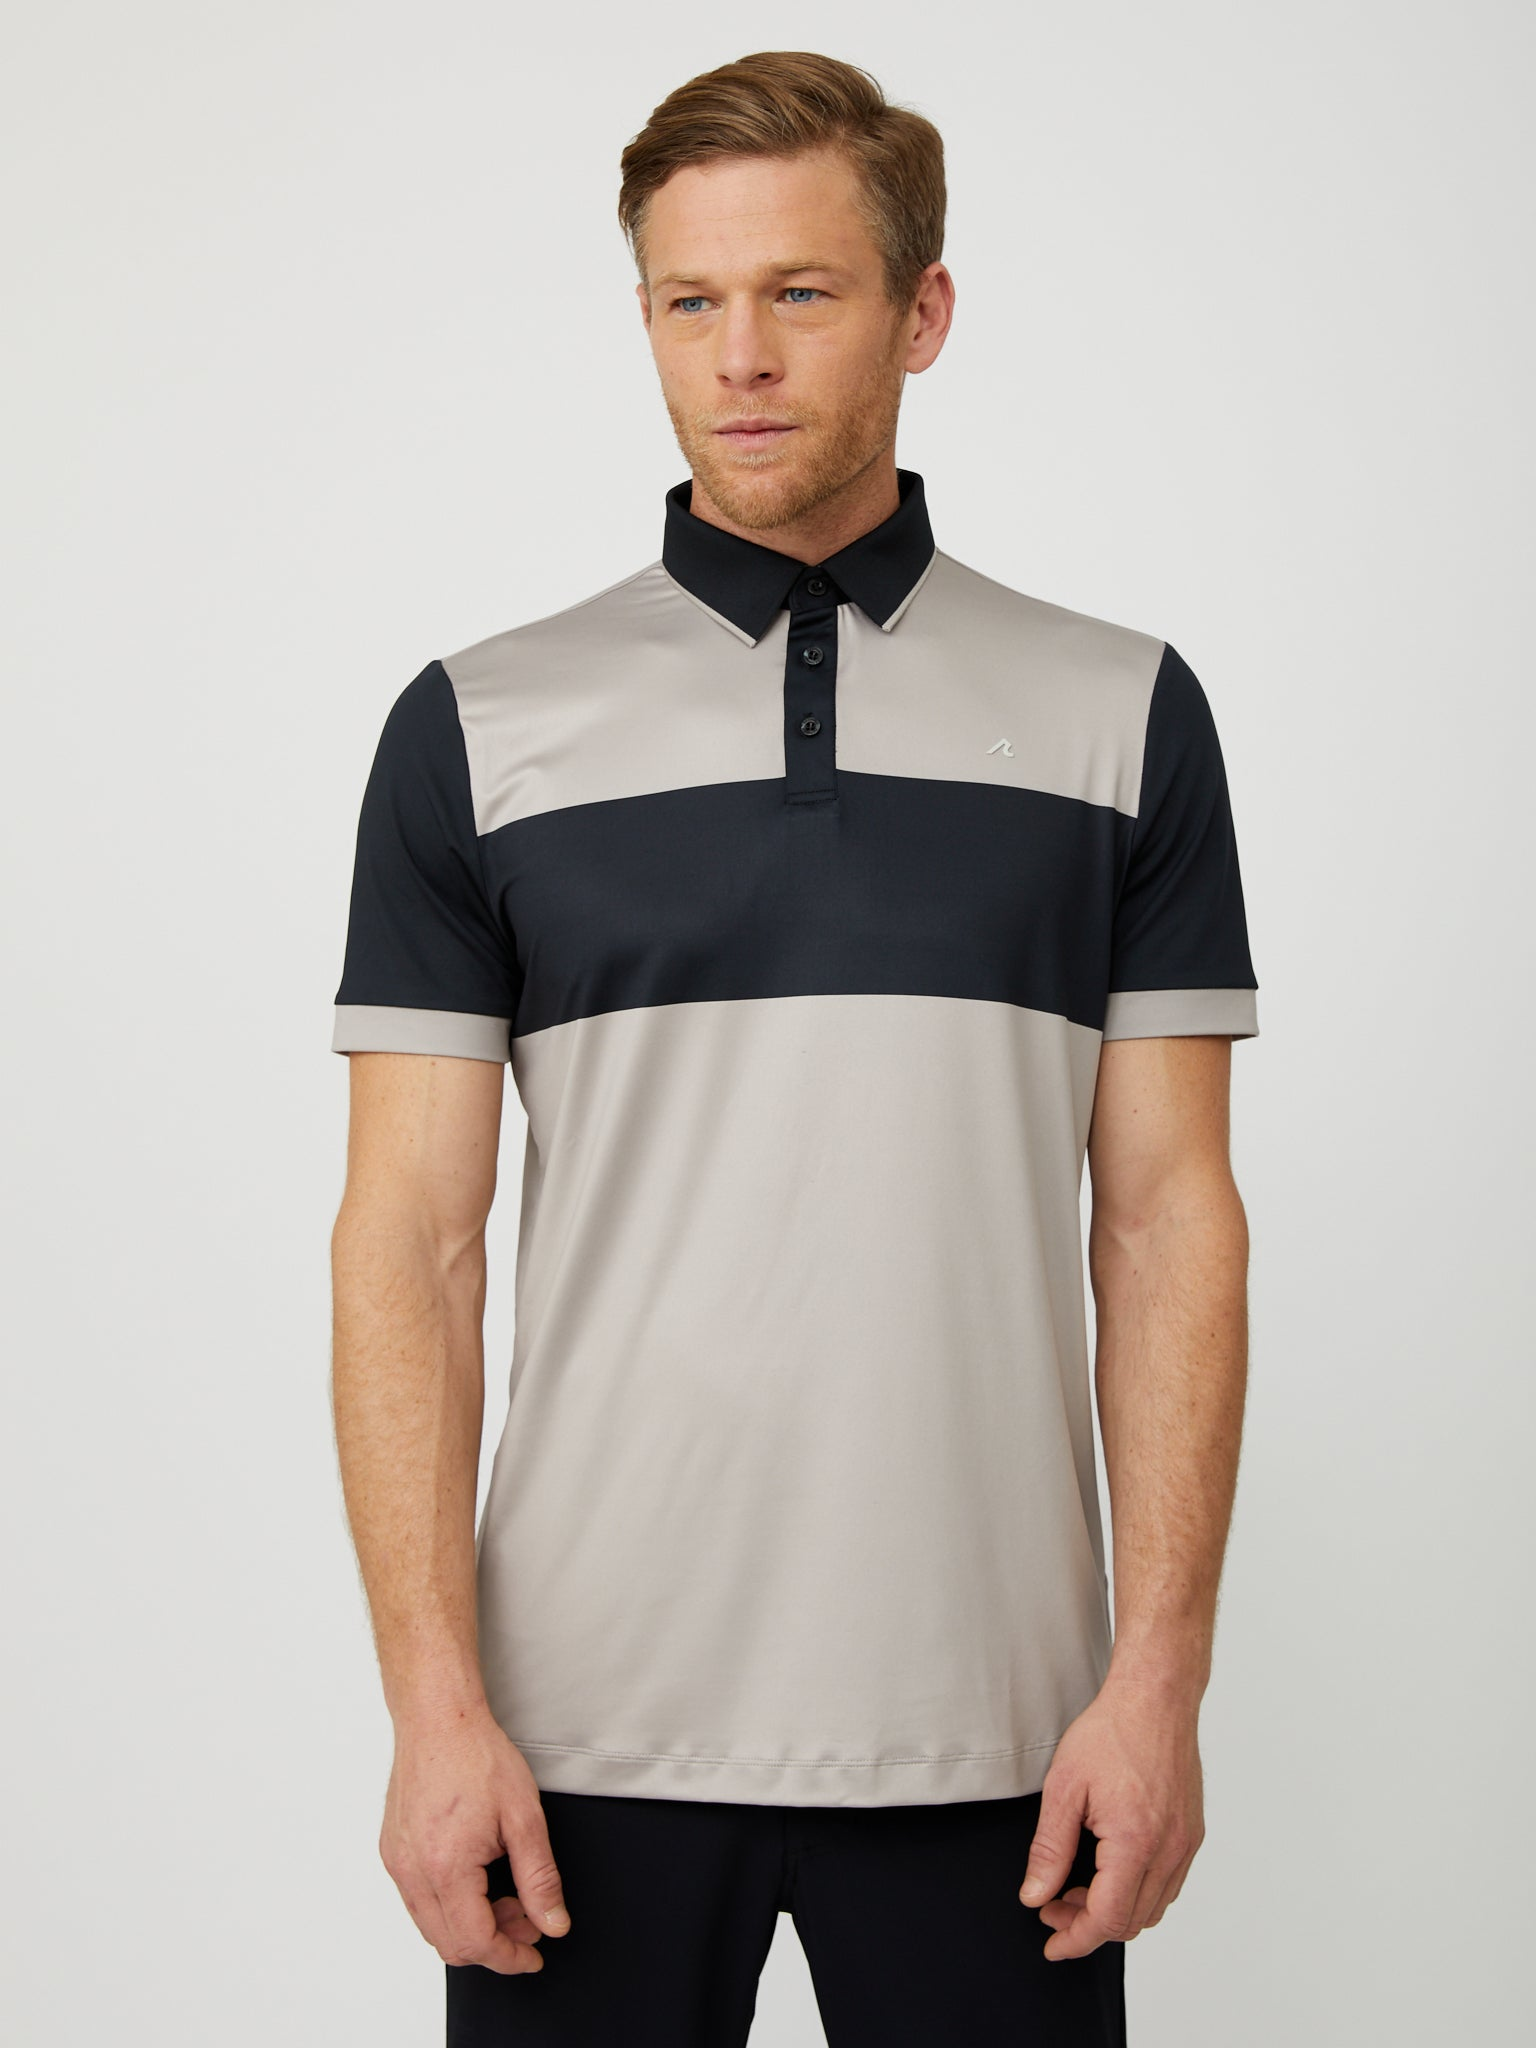 Lloyd Polo in Paloma/Black